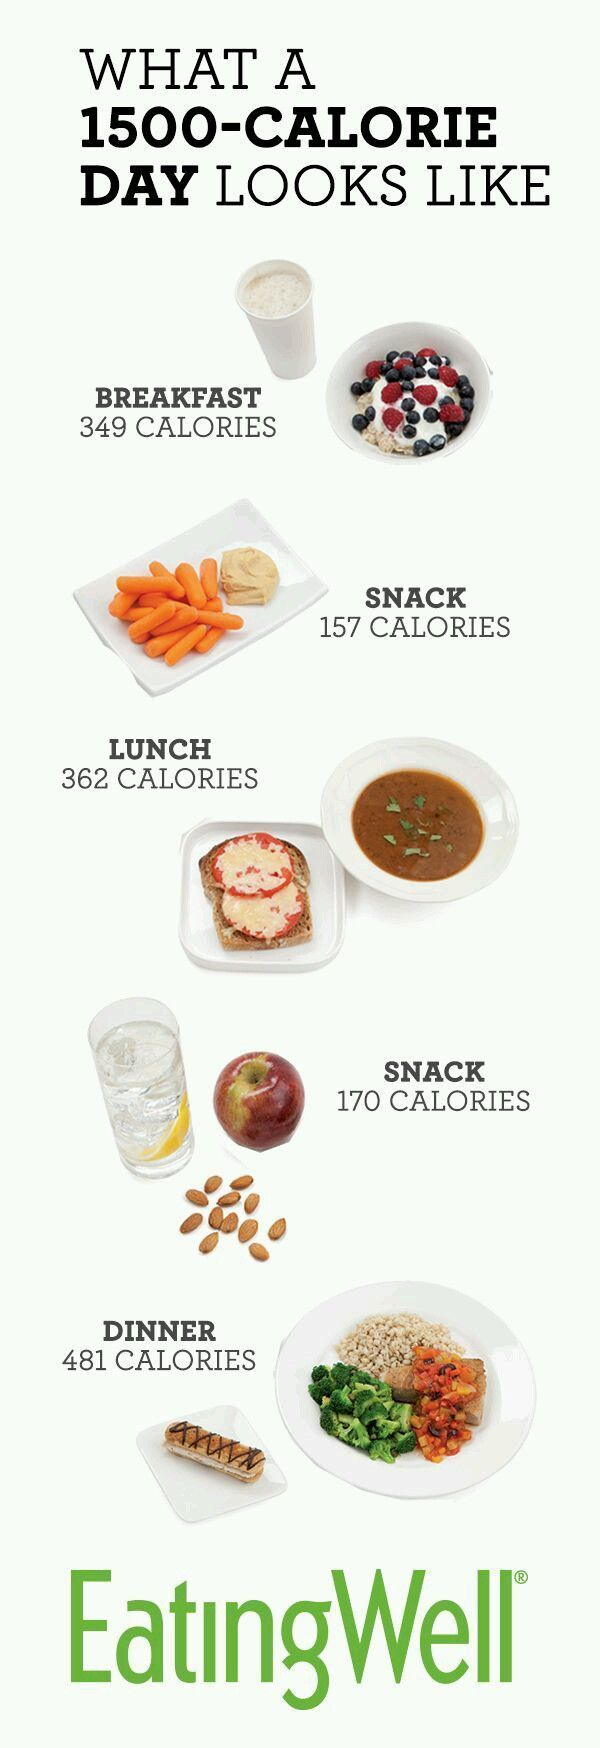 Most people will lose weight on a daily diet of 1,500 calories, which is the total calorie count for all the food pictured here. #500CalorieDiets,